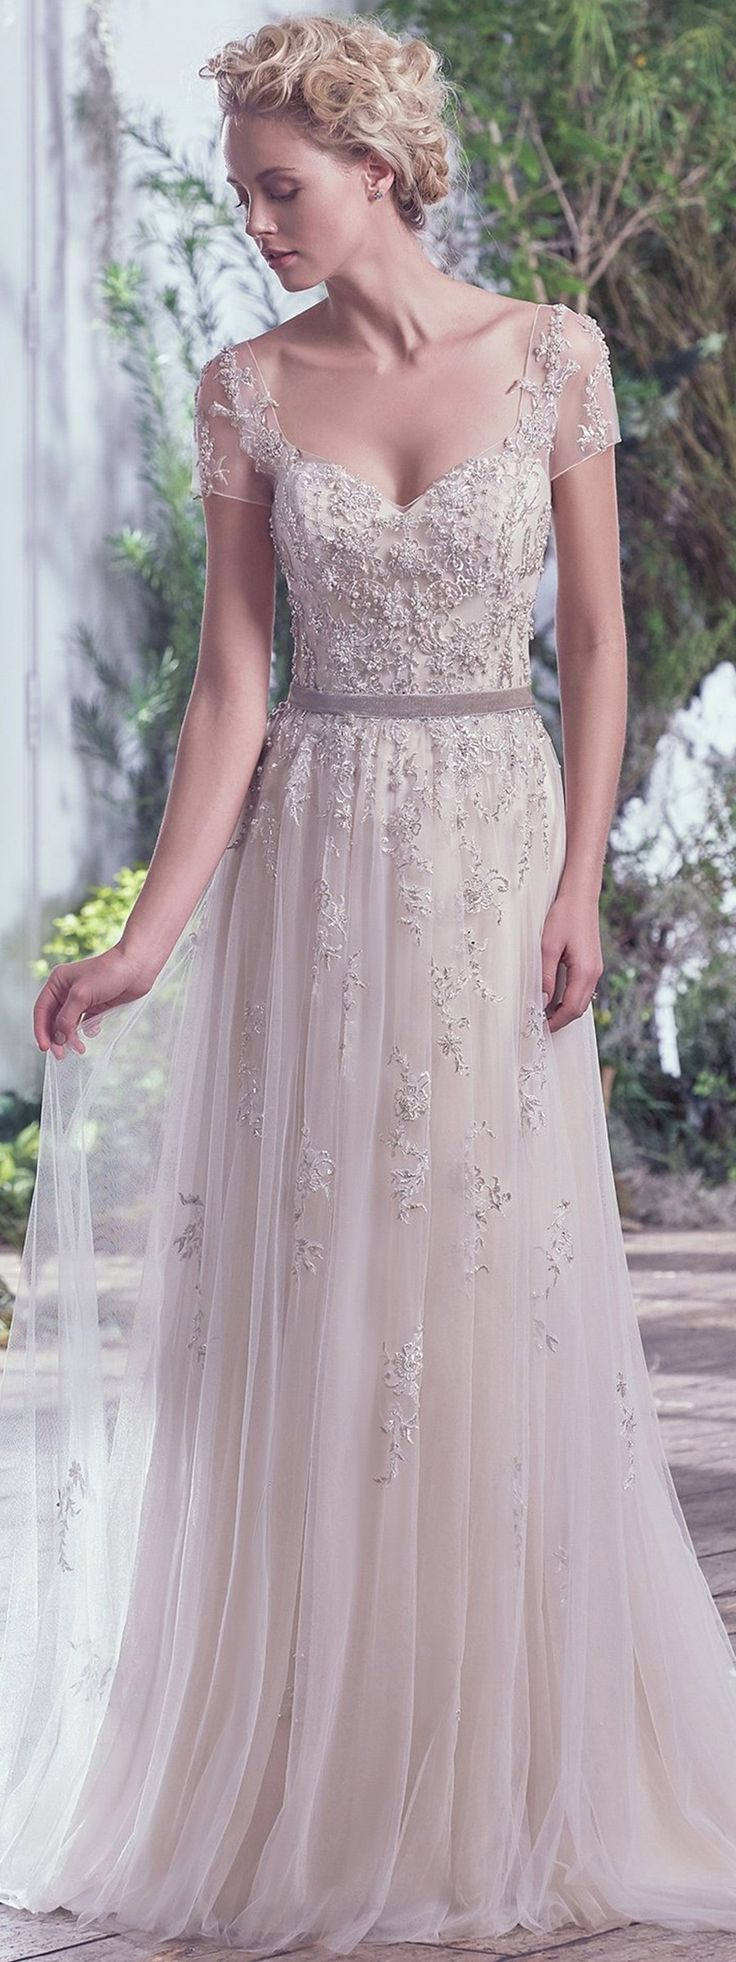 Love the whimsical style of this. I'm not sure how that type of sleeve would look on me/where the waste should sit on me, but this dress is gorgeous